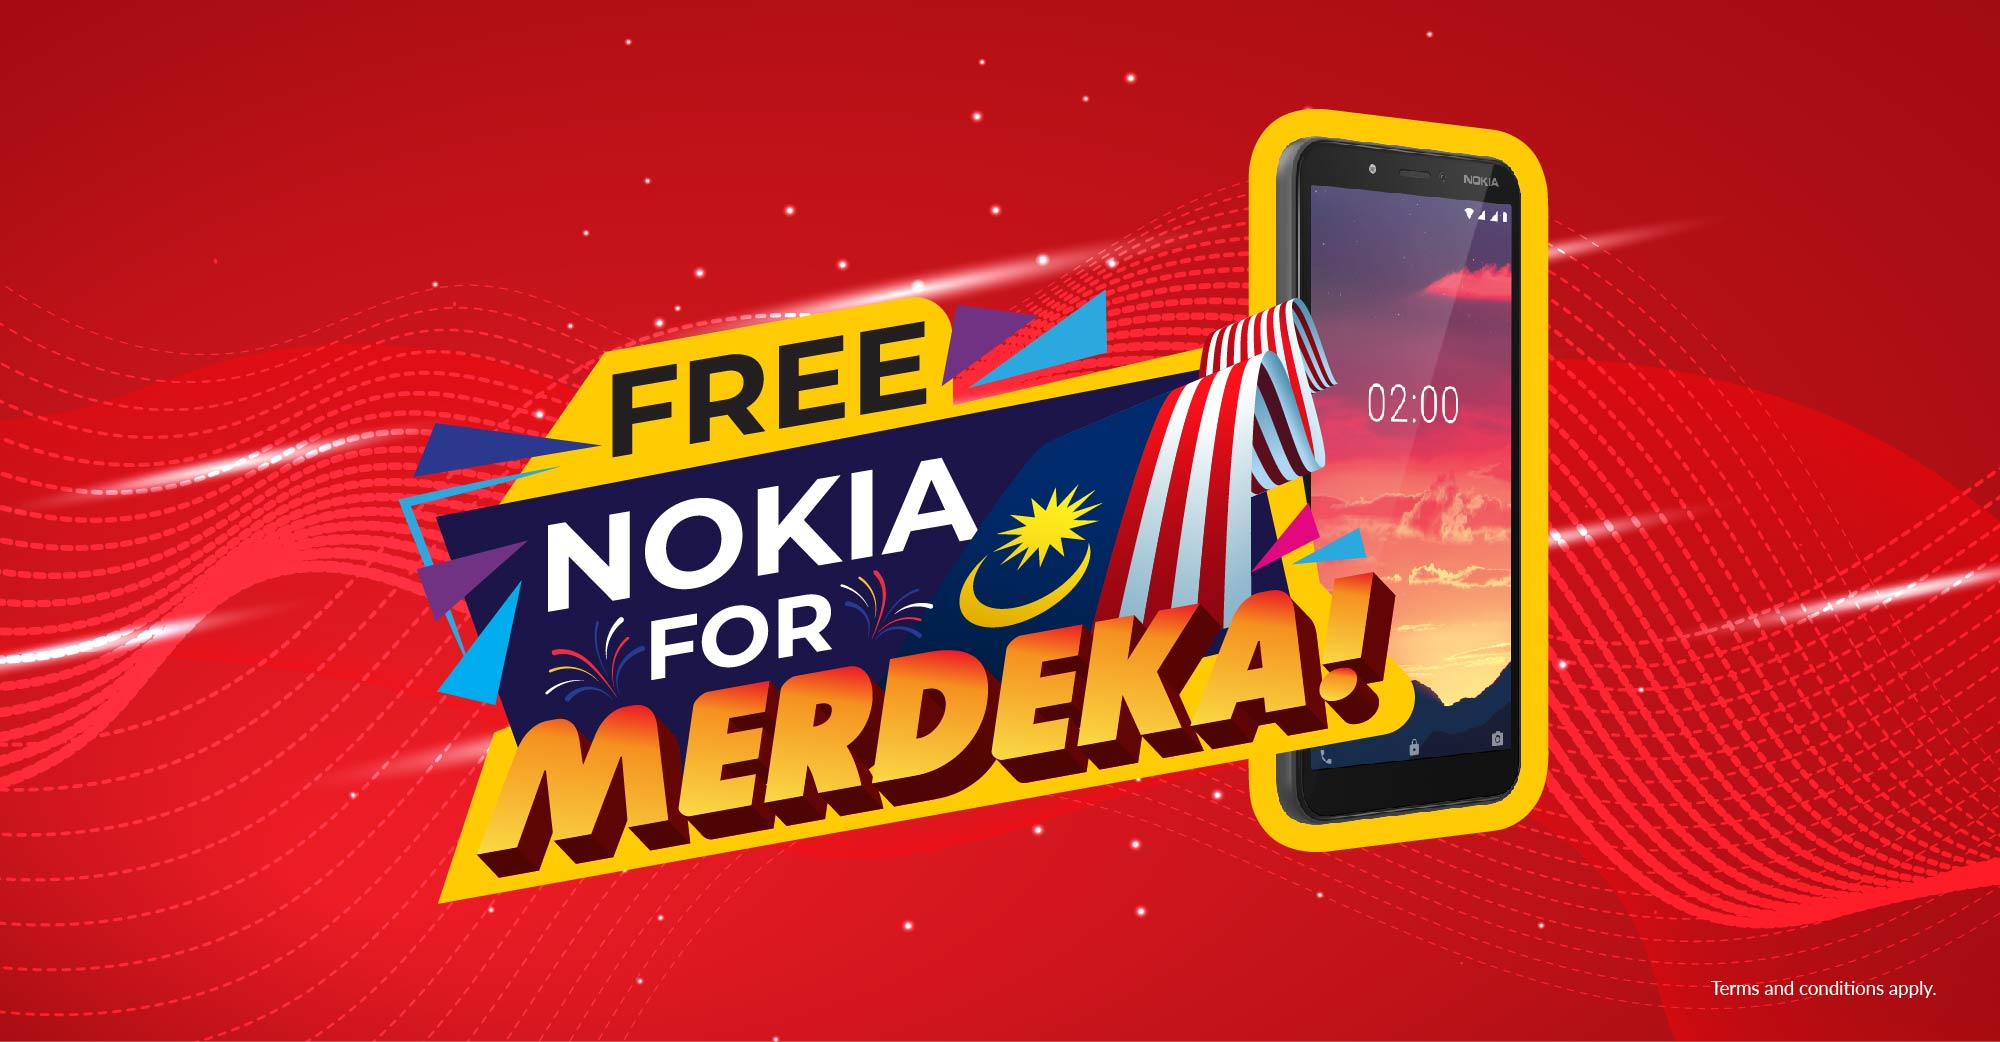 FREE Nokia for Merdeka!, 63 smartphones to be won!